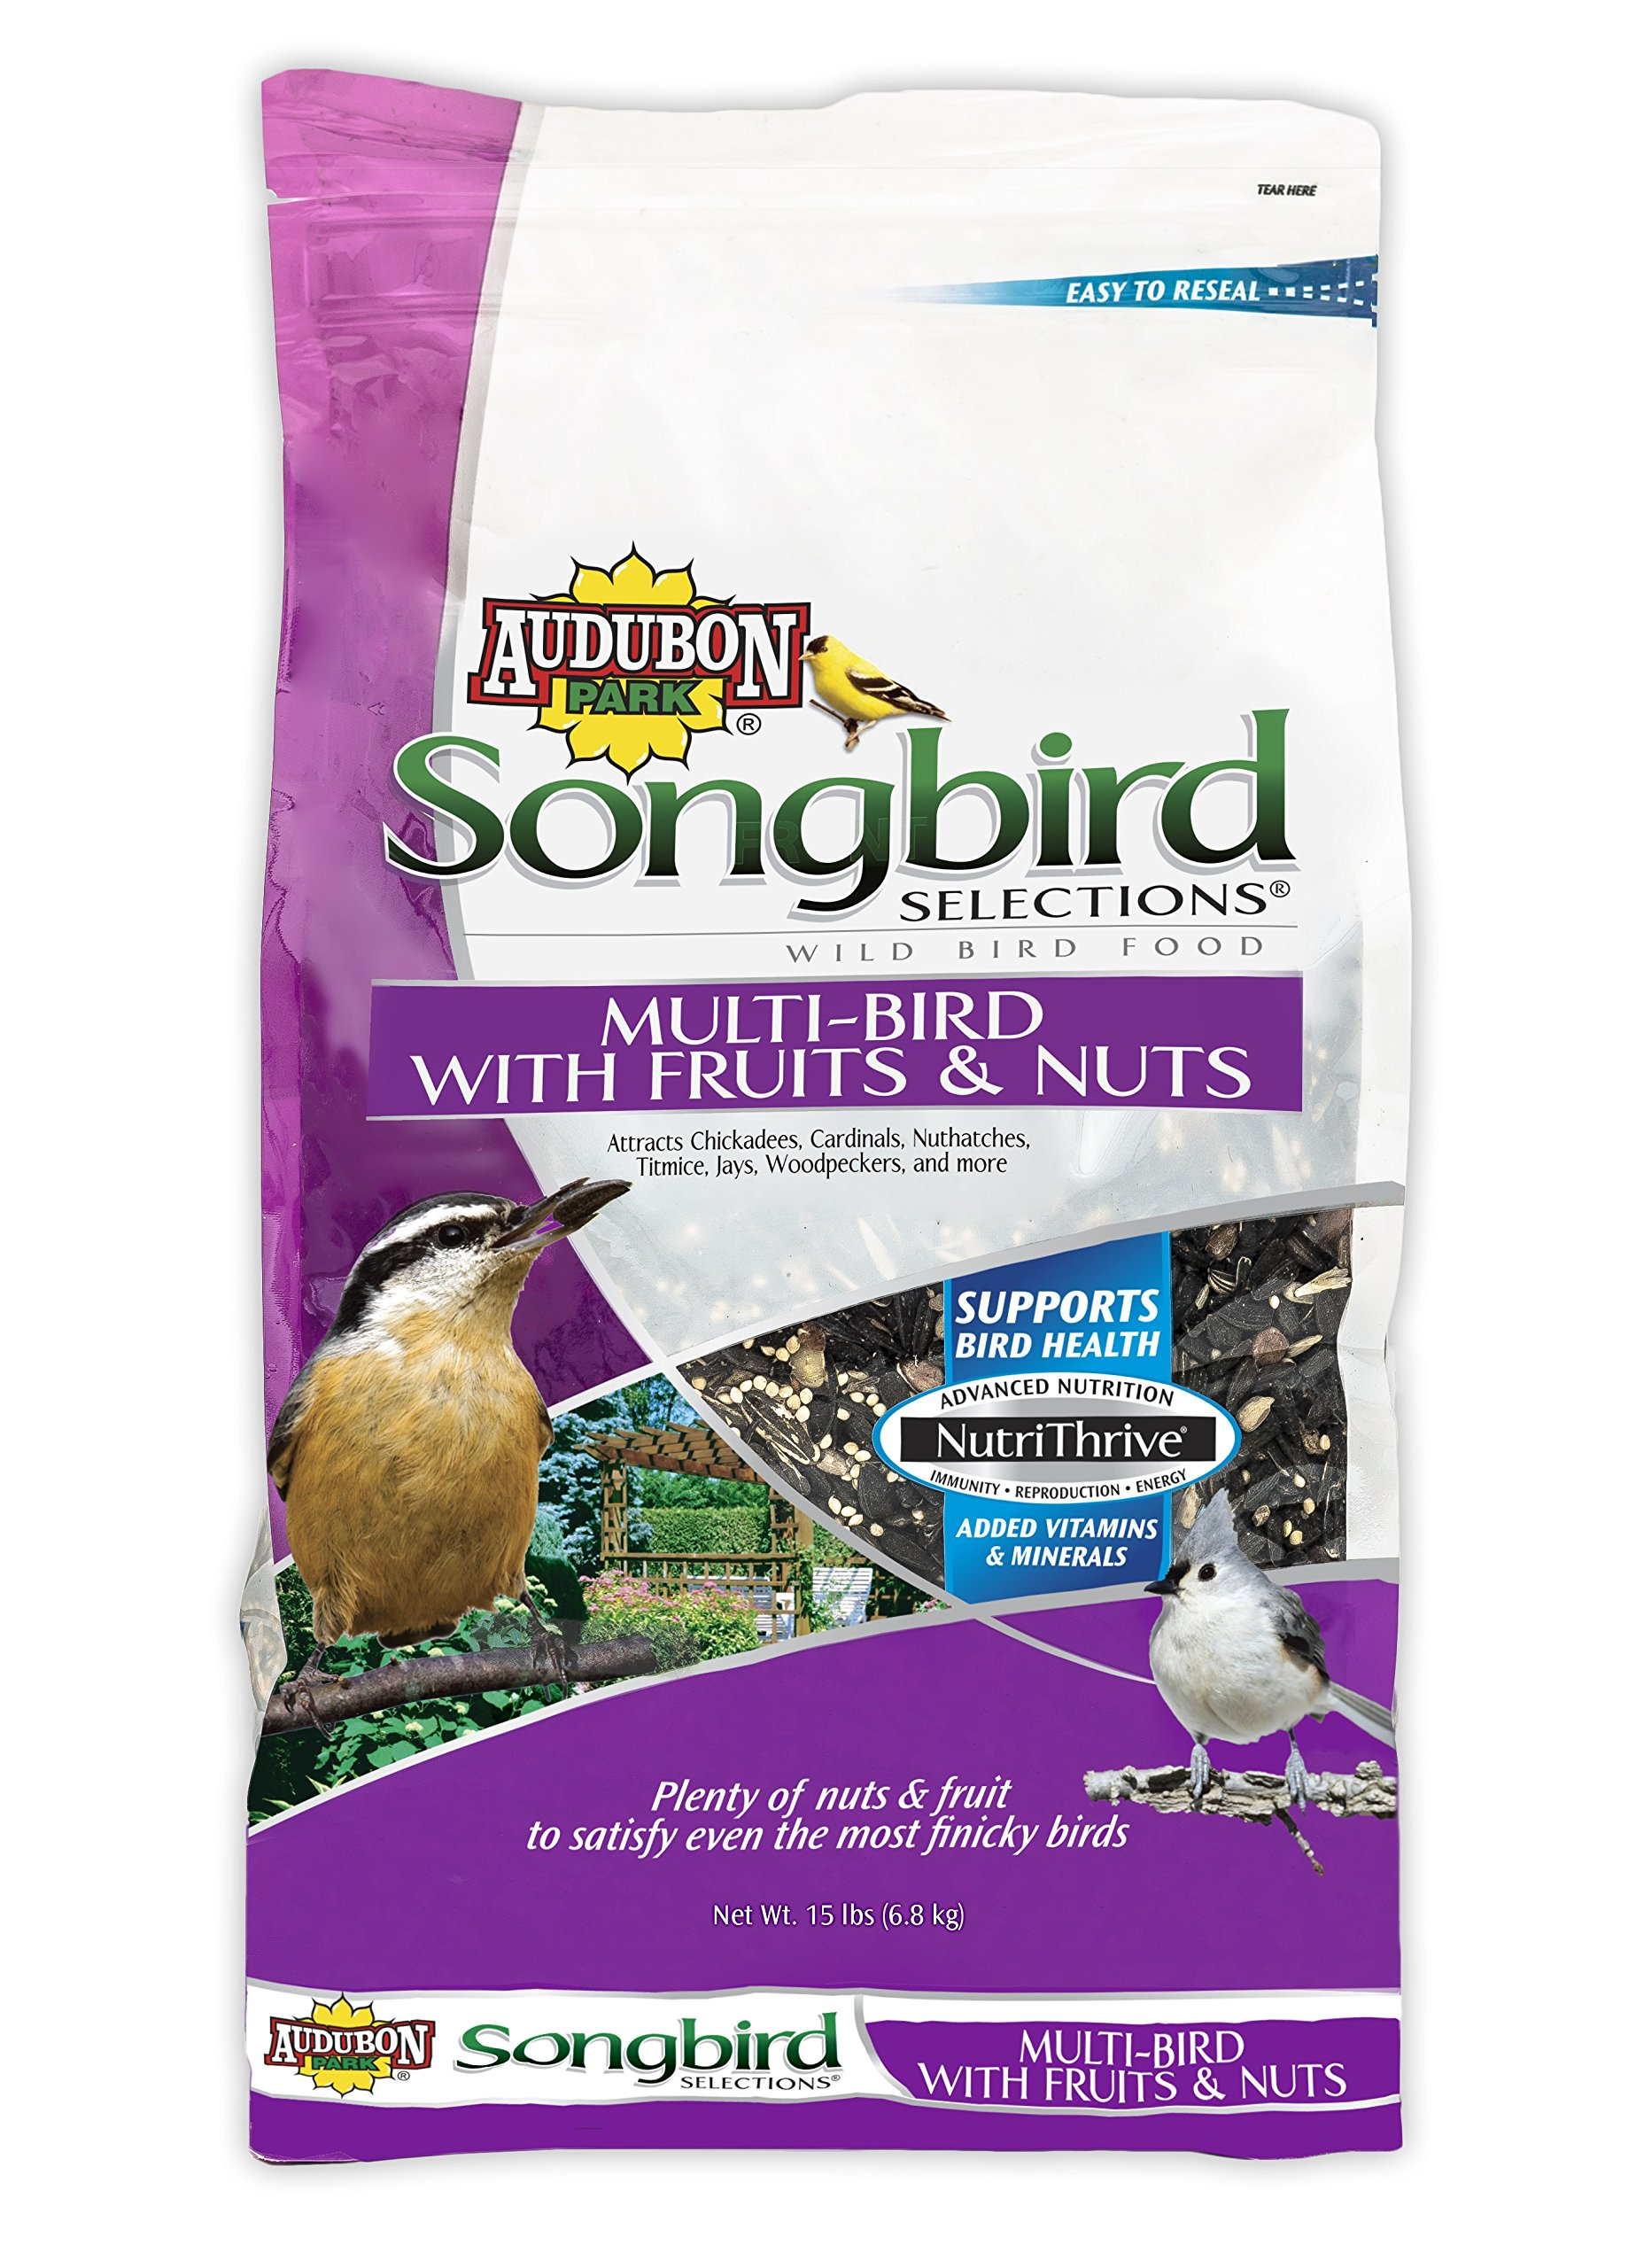 Audubon Park Songbird Selections 11980 Multi Wild Bird Food with Fruits and Nuts, 15 lb by Audubon Park Songbird Selections